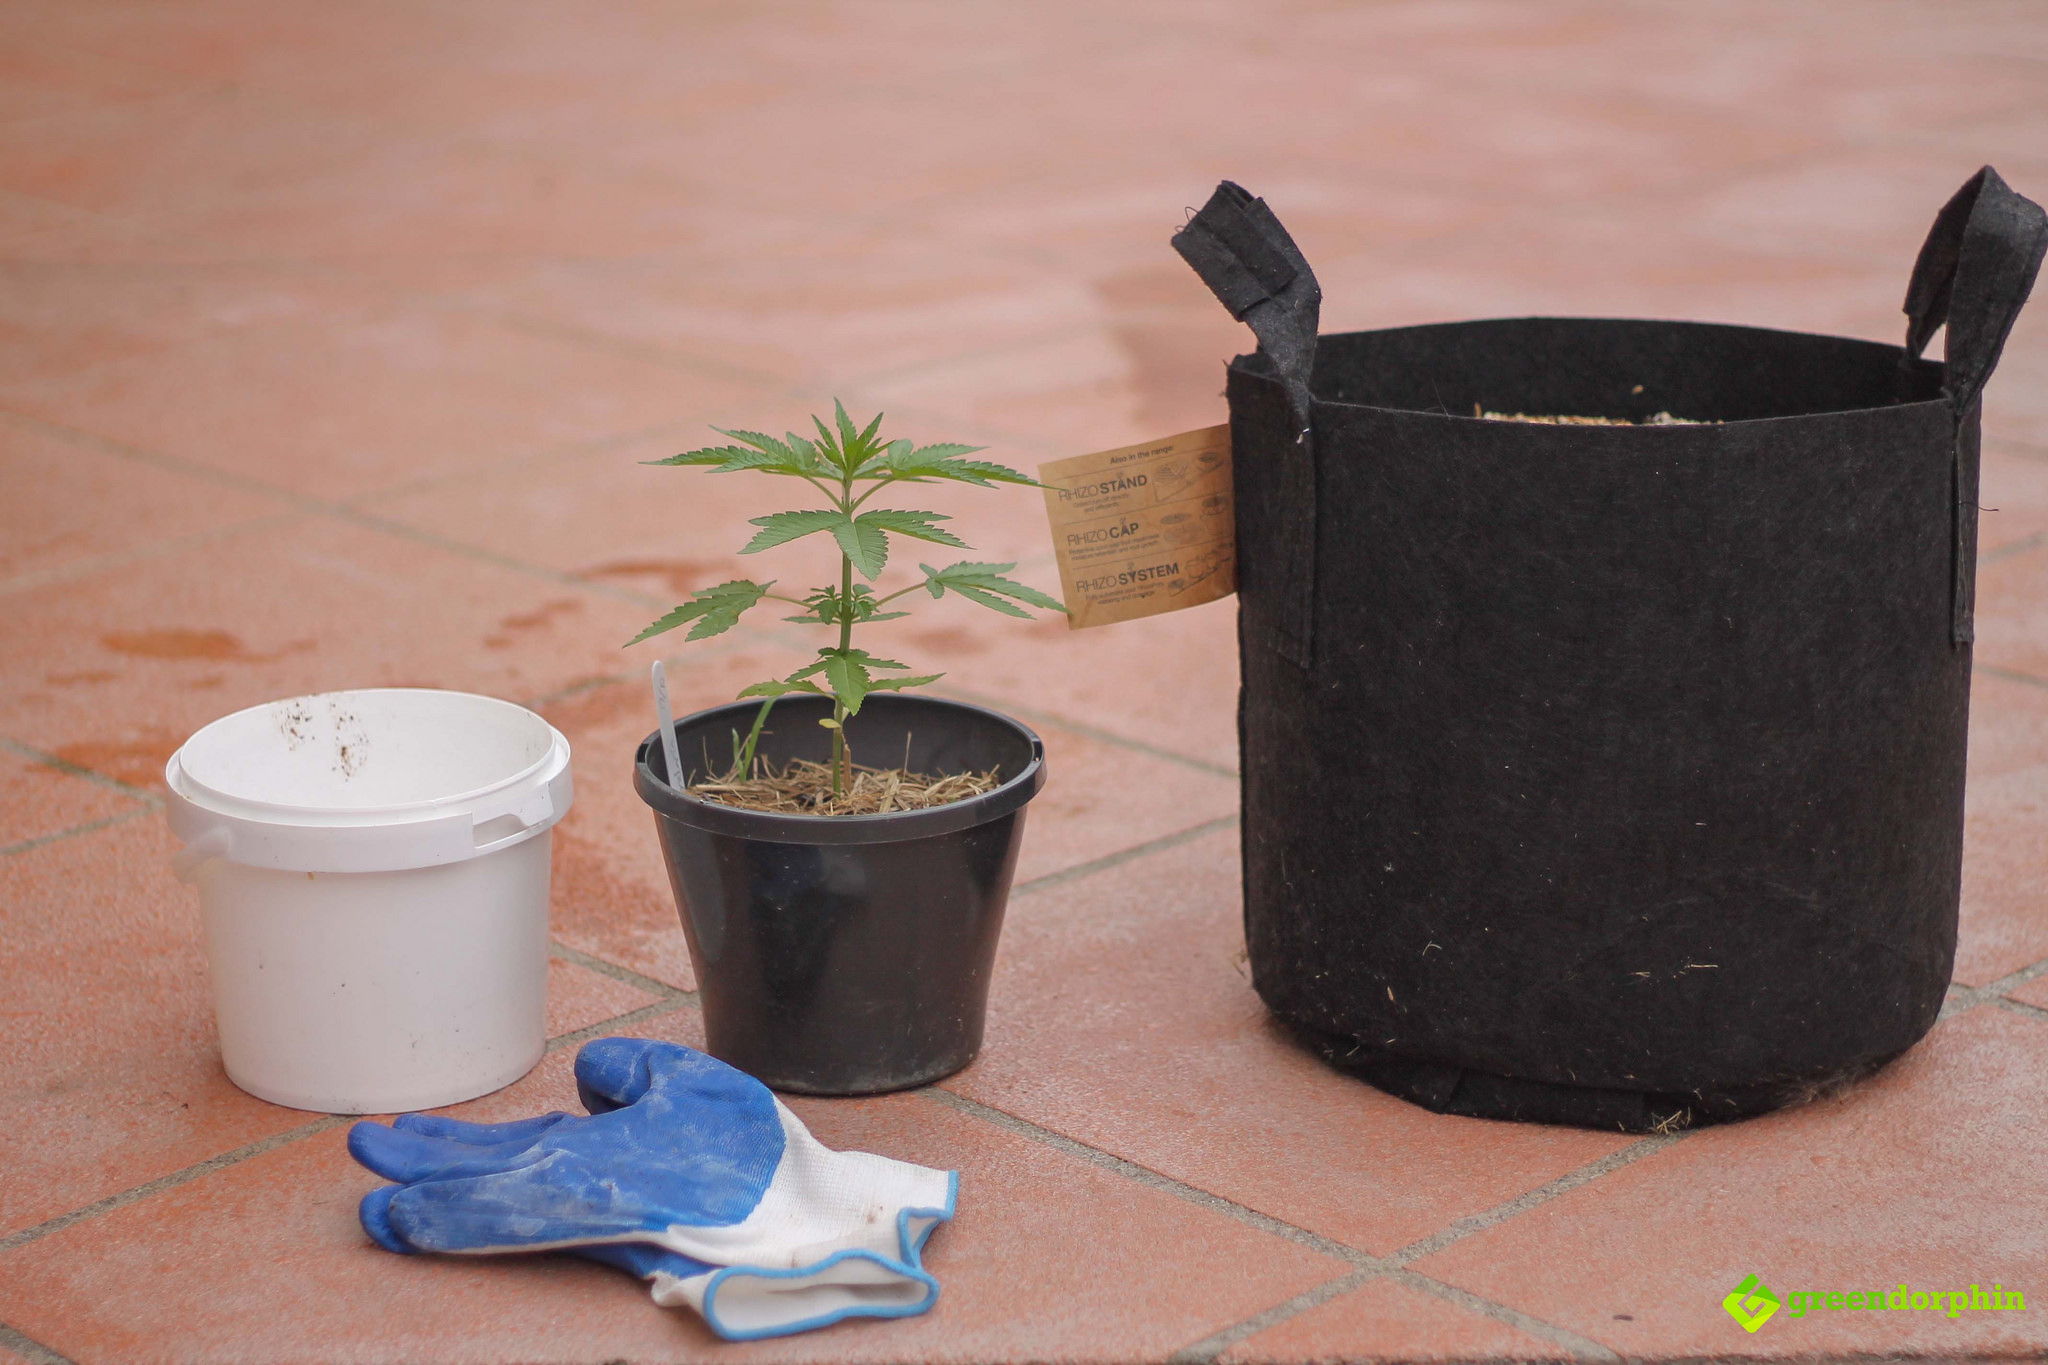 Repot Your Cannabis Plants the test subject